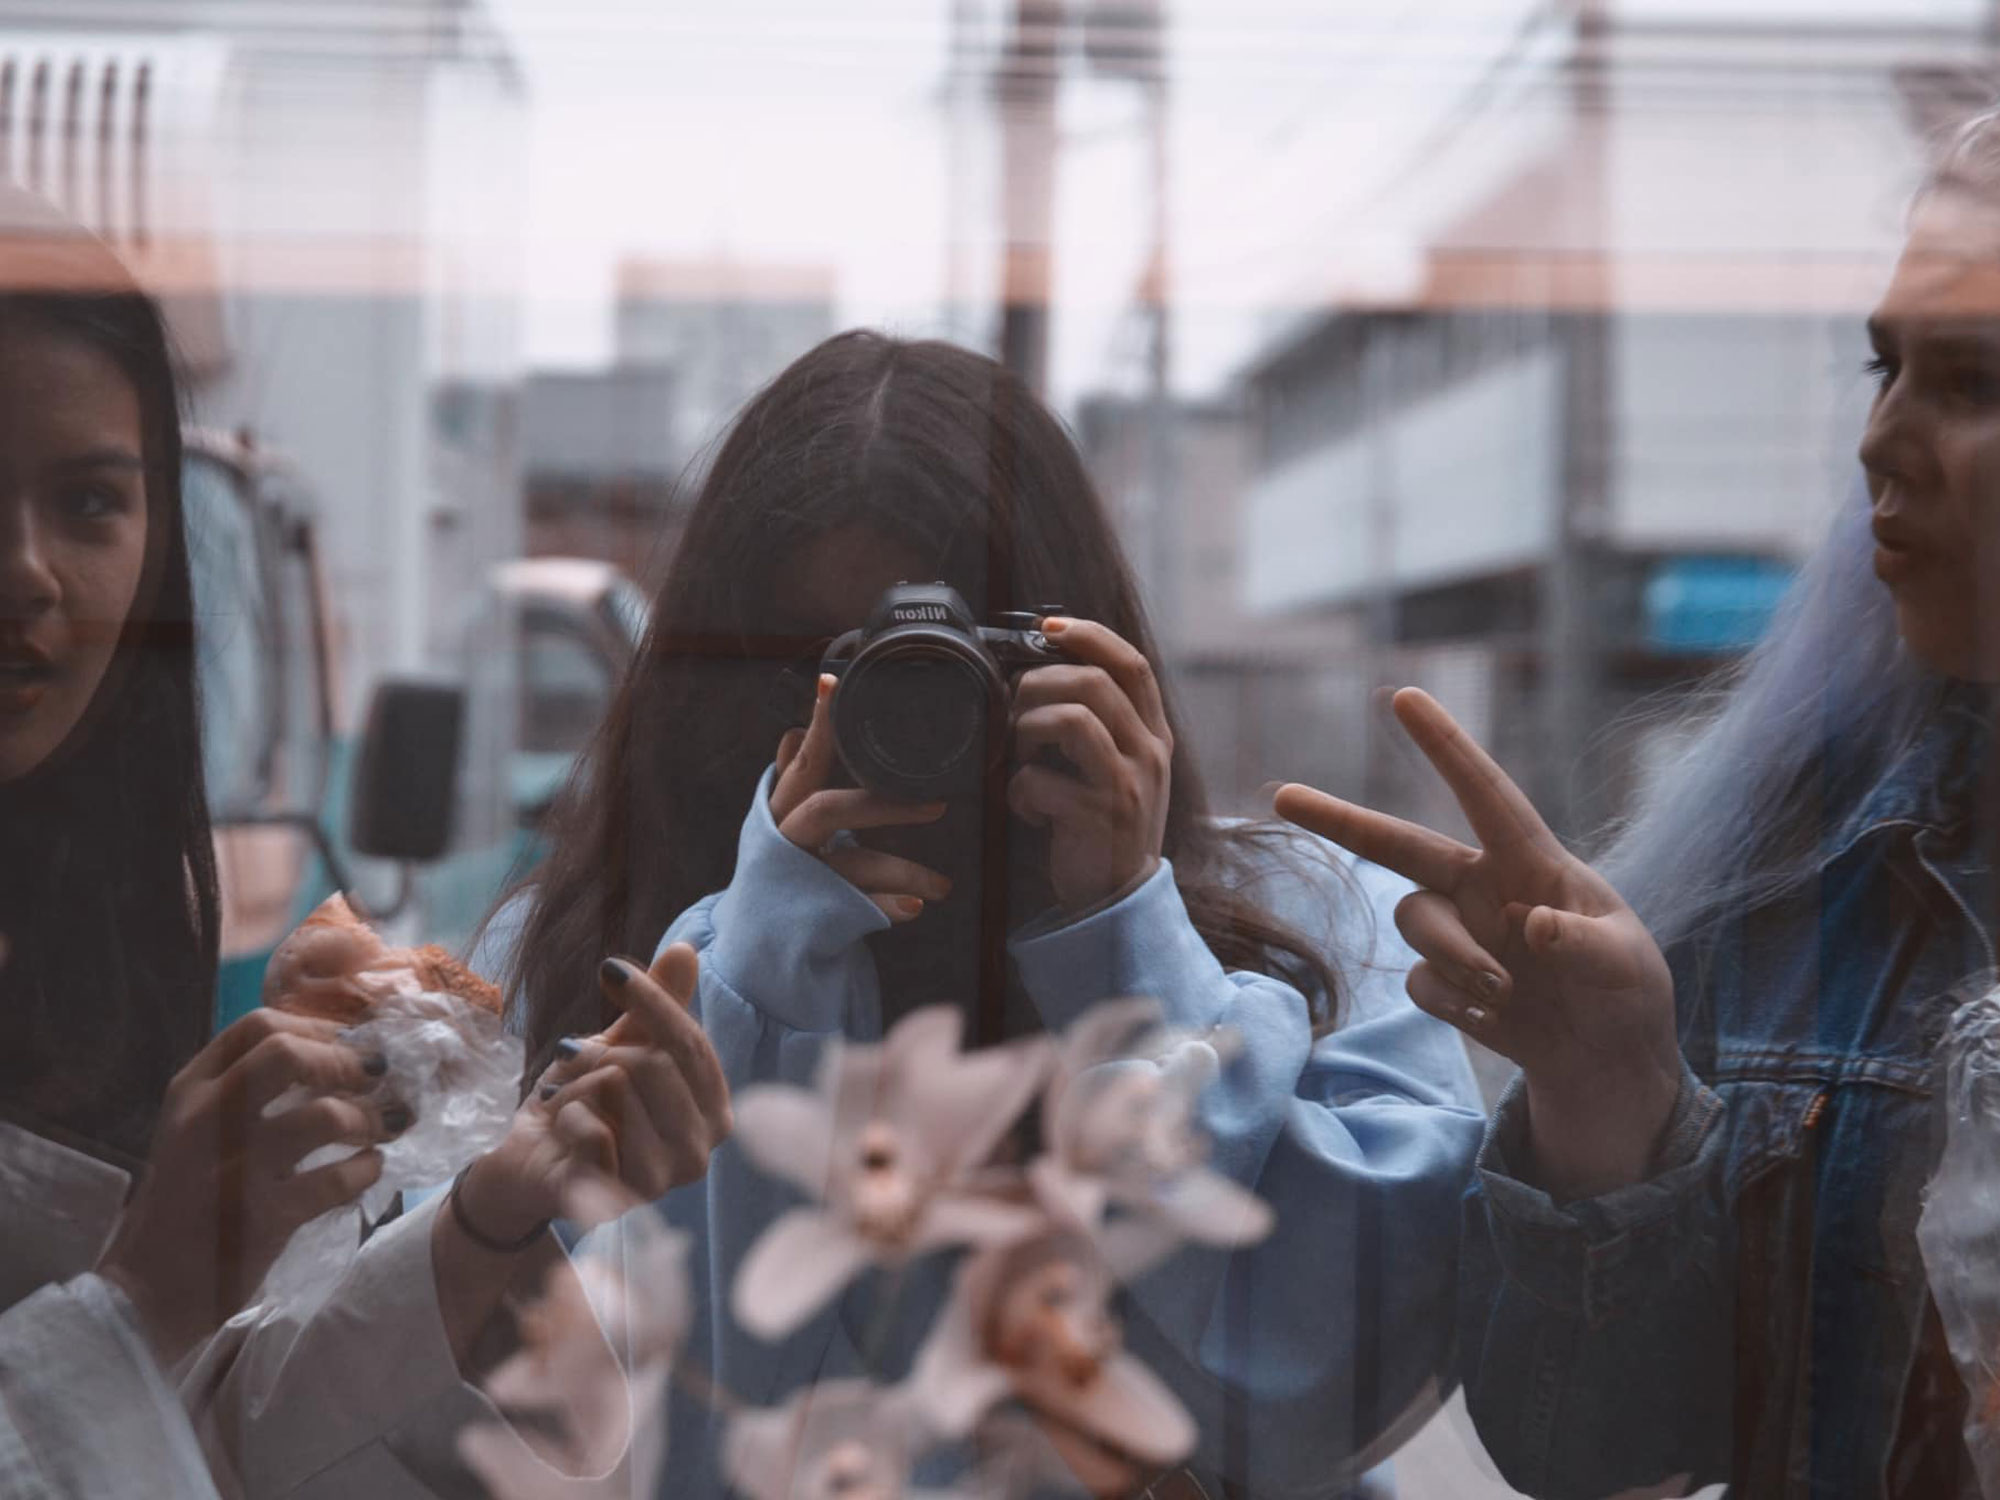 Window reflection with three students.